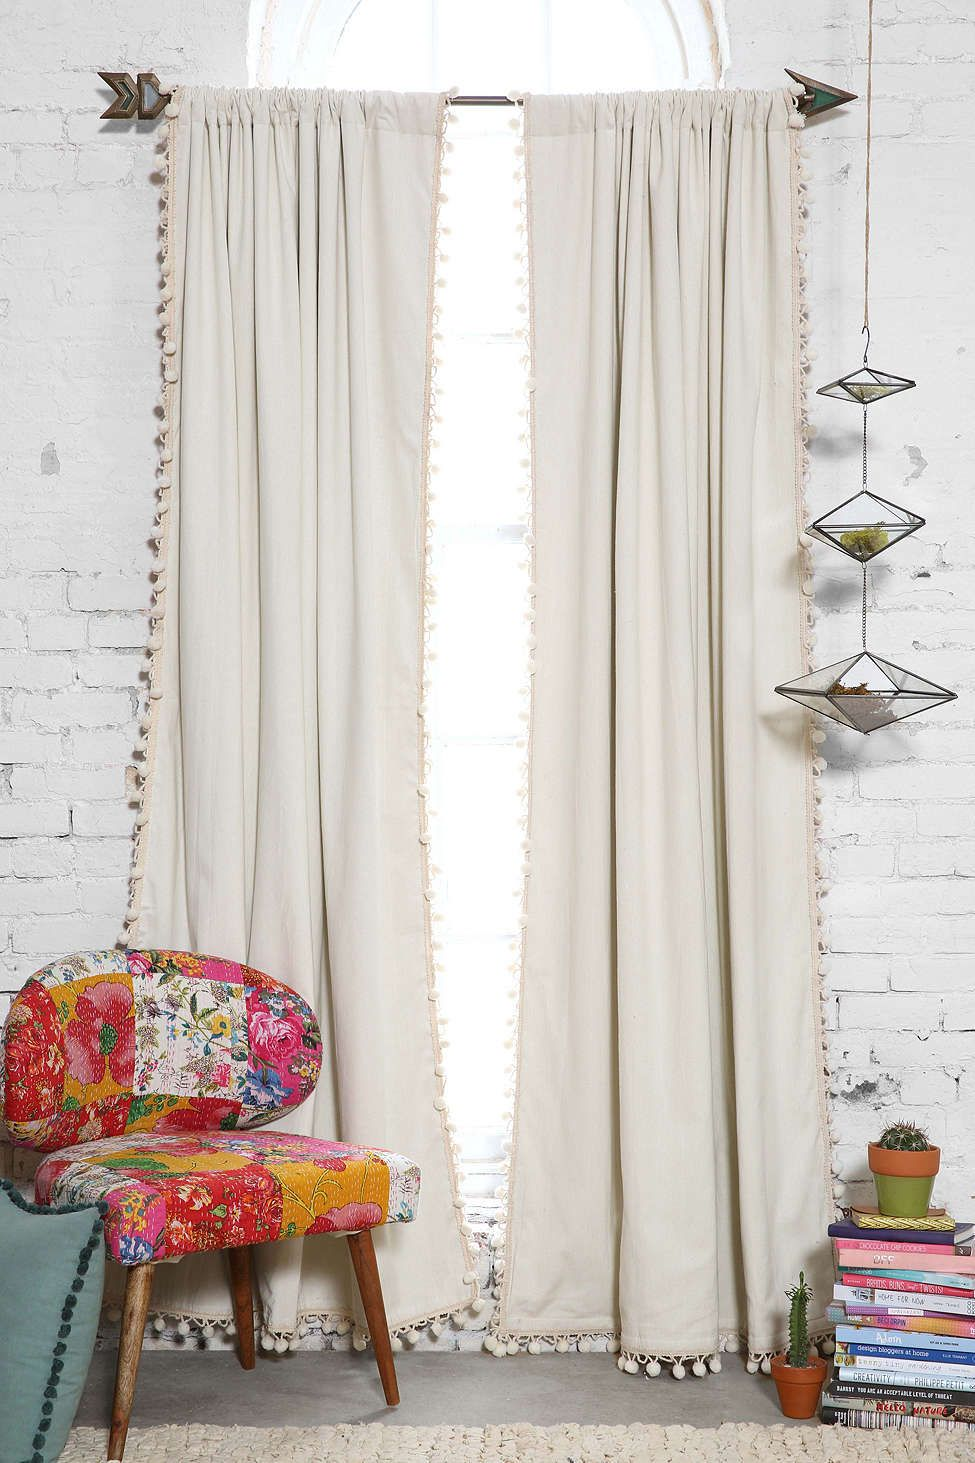 Blackout Pompom Curtain in 2019 Curtains, Diy curtains